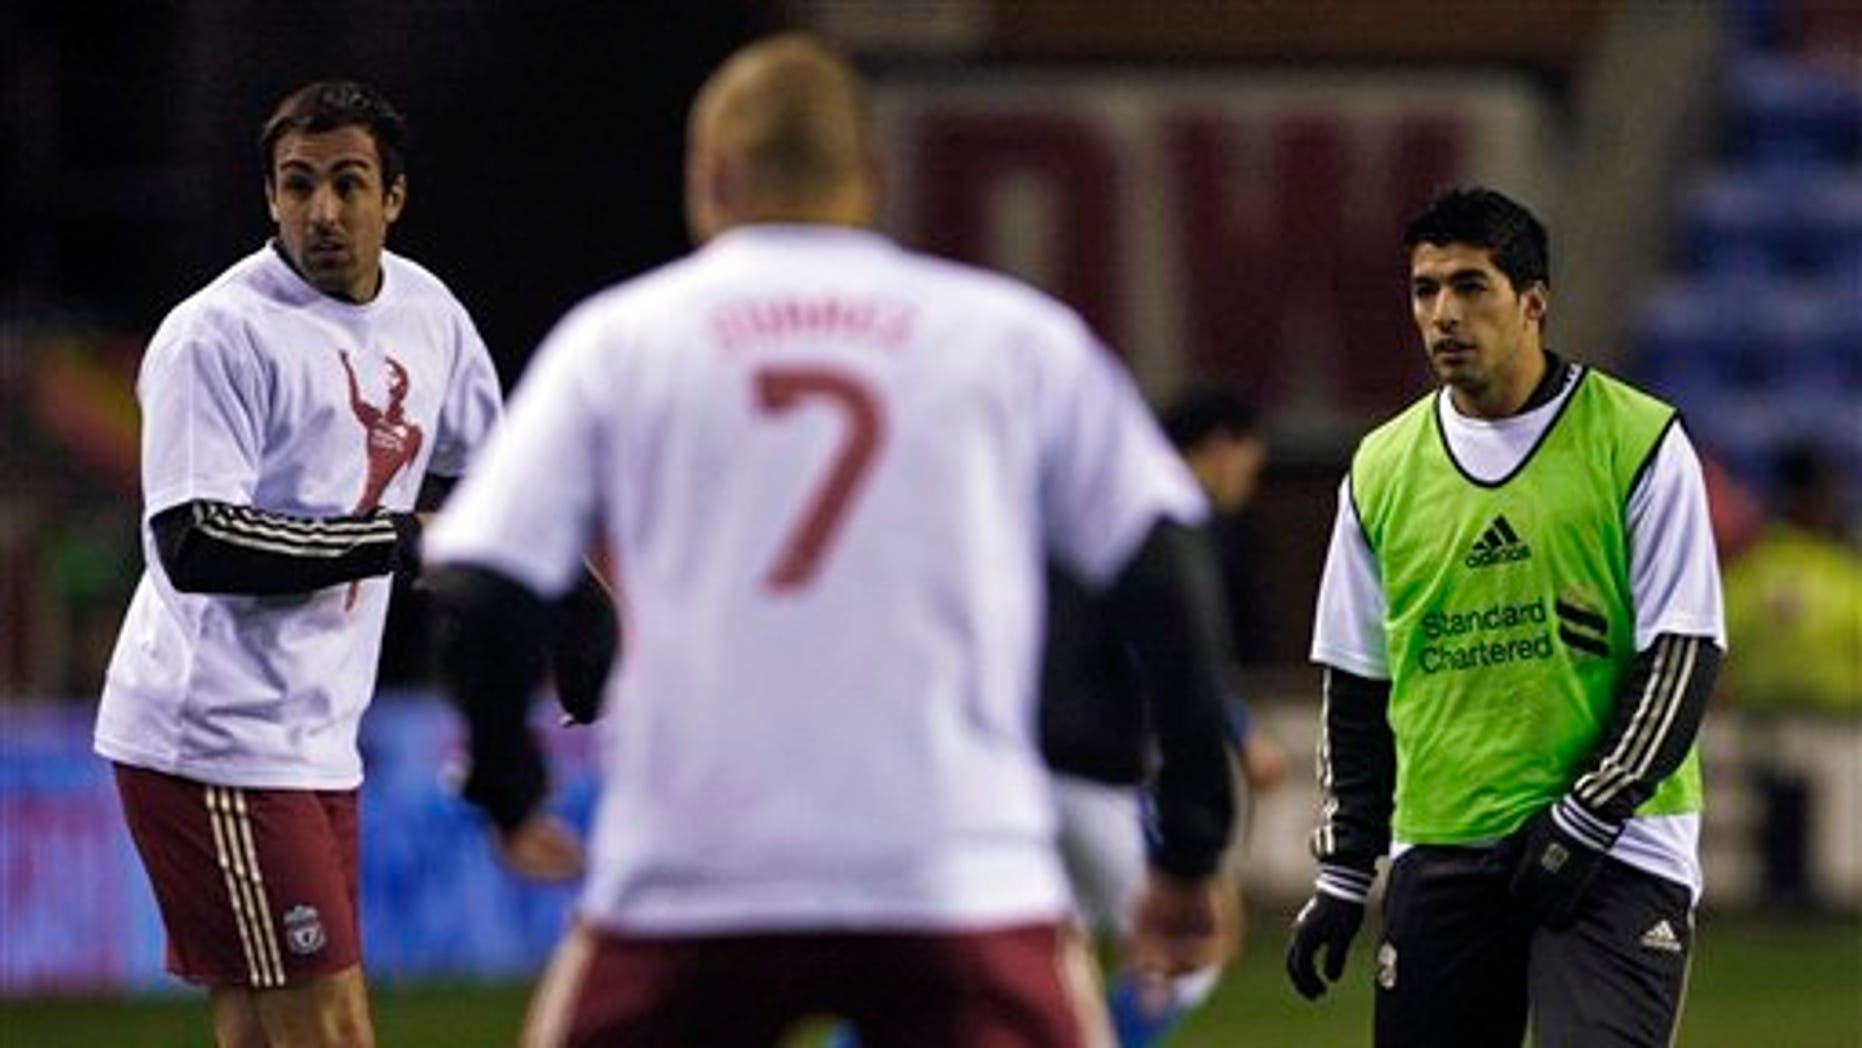 Dec. 21, 2011: Liverpool's Luis Suarez, right, warms up with teammates wearing Luis Suarez shirts before their English Premier League soccer match against Wigan at DW Stadium, Wigan, England.